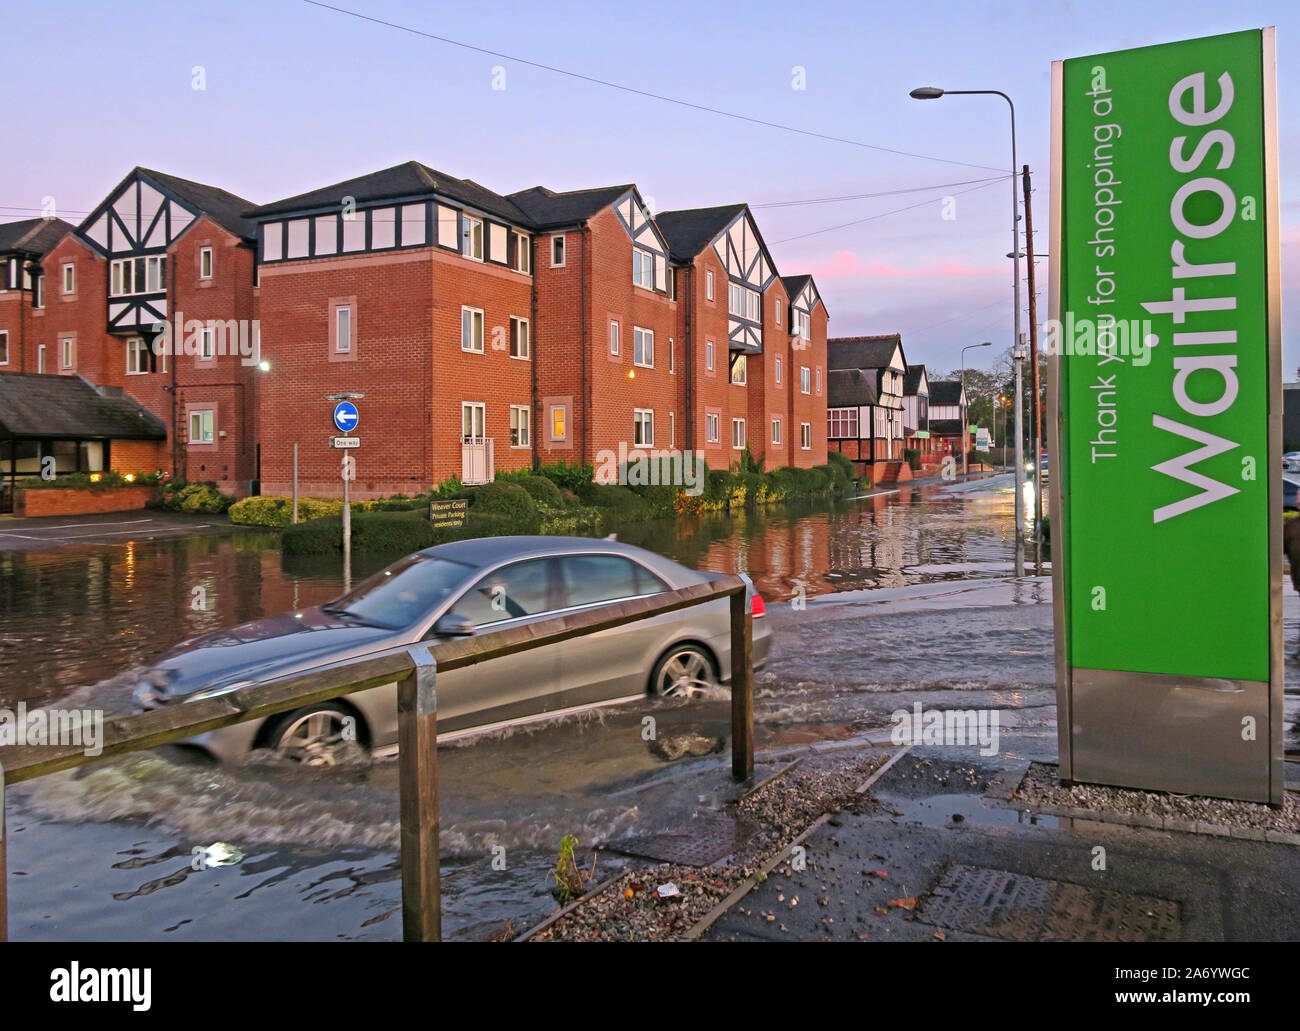 GoTonySmith,HotpixUK,@HotpixUK,River Weaver October 2019,Cheshire,England,UK,in,North West England,flood,Northwich,autumn,weekend,road closed,water,damage,warnings,river Weaver,river Dane,drains lifted,lifted drain,fail,failed,insurance,claims,climate change,Yellow Warning,Extinction Rebellion,underwater,Waitrose,Car Park,Flooding,car driving,through water,through floods,waves